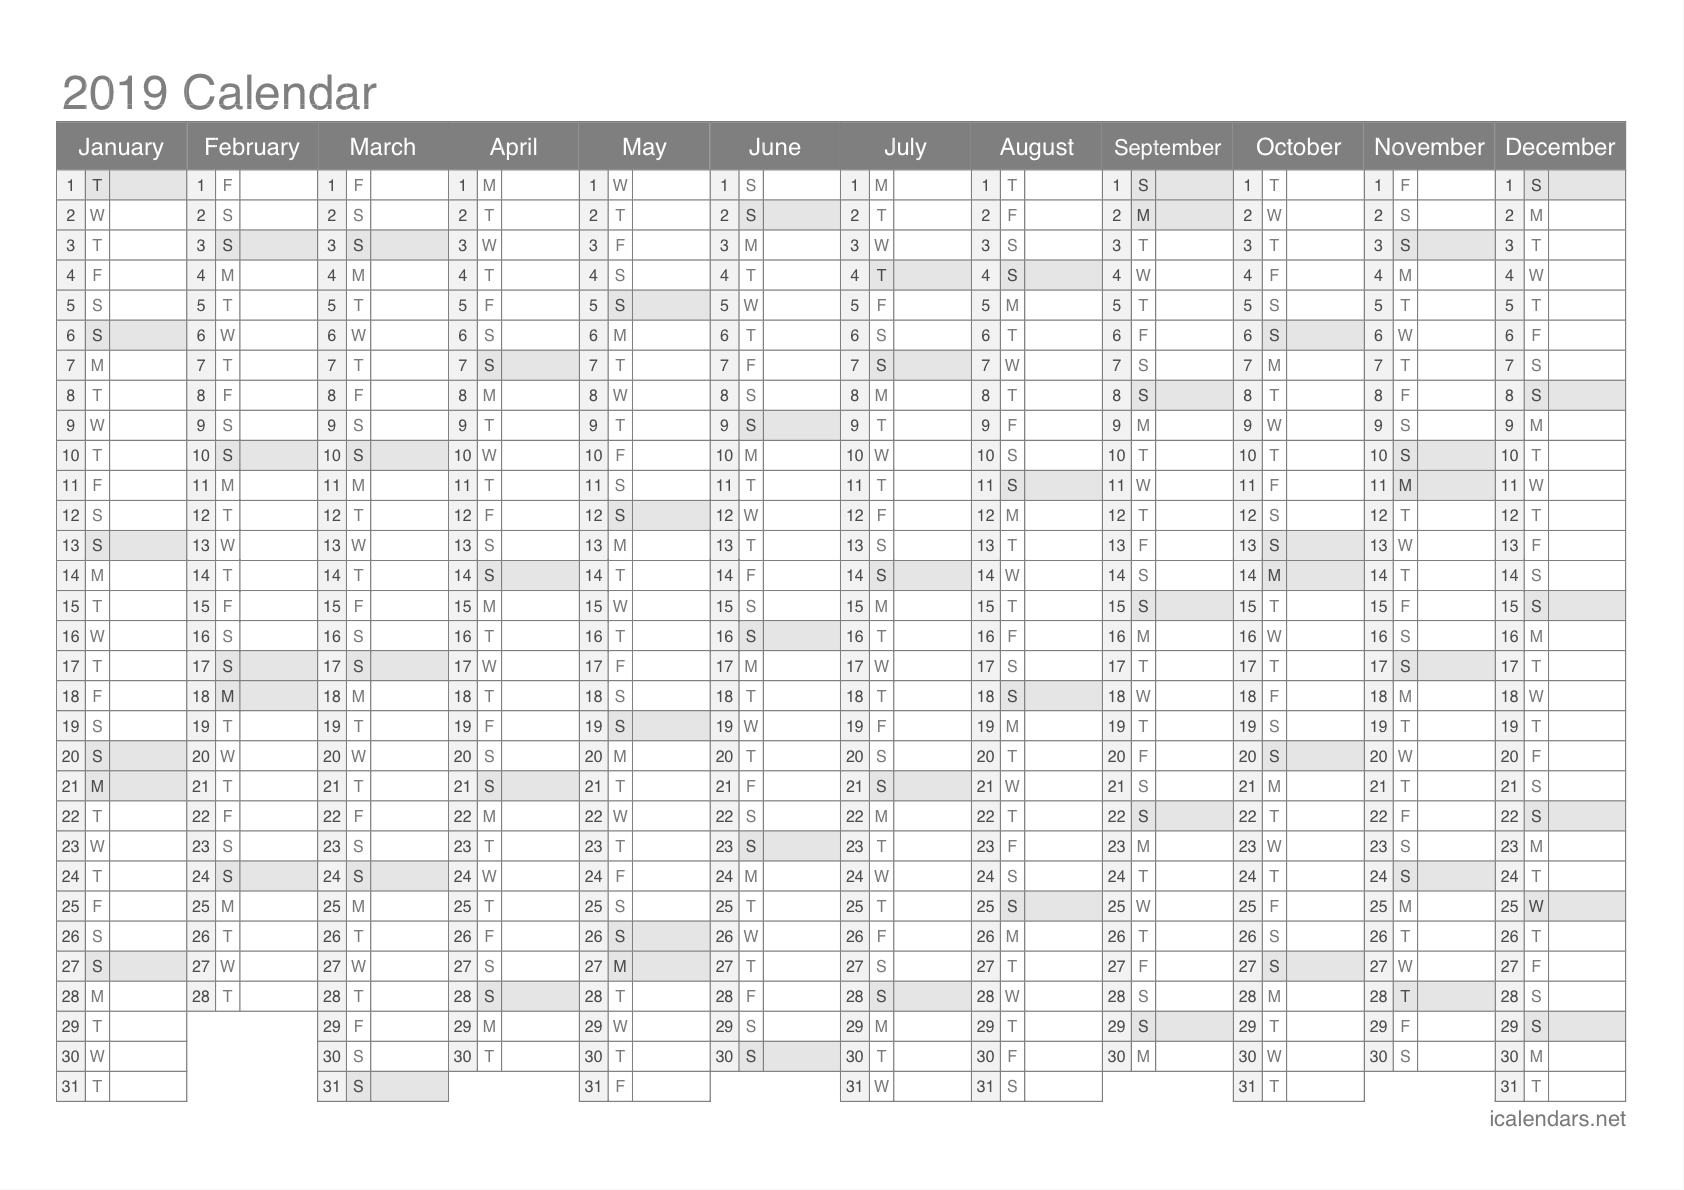 Year 2019 Calendar Printable With PDF Or Excel Icalendars Net